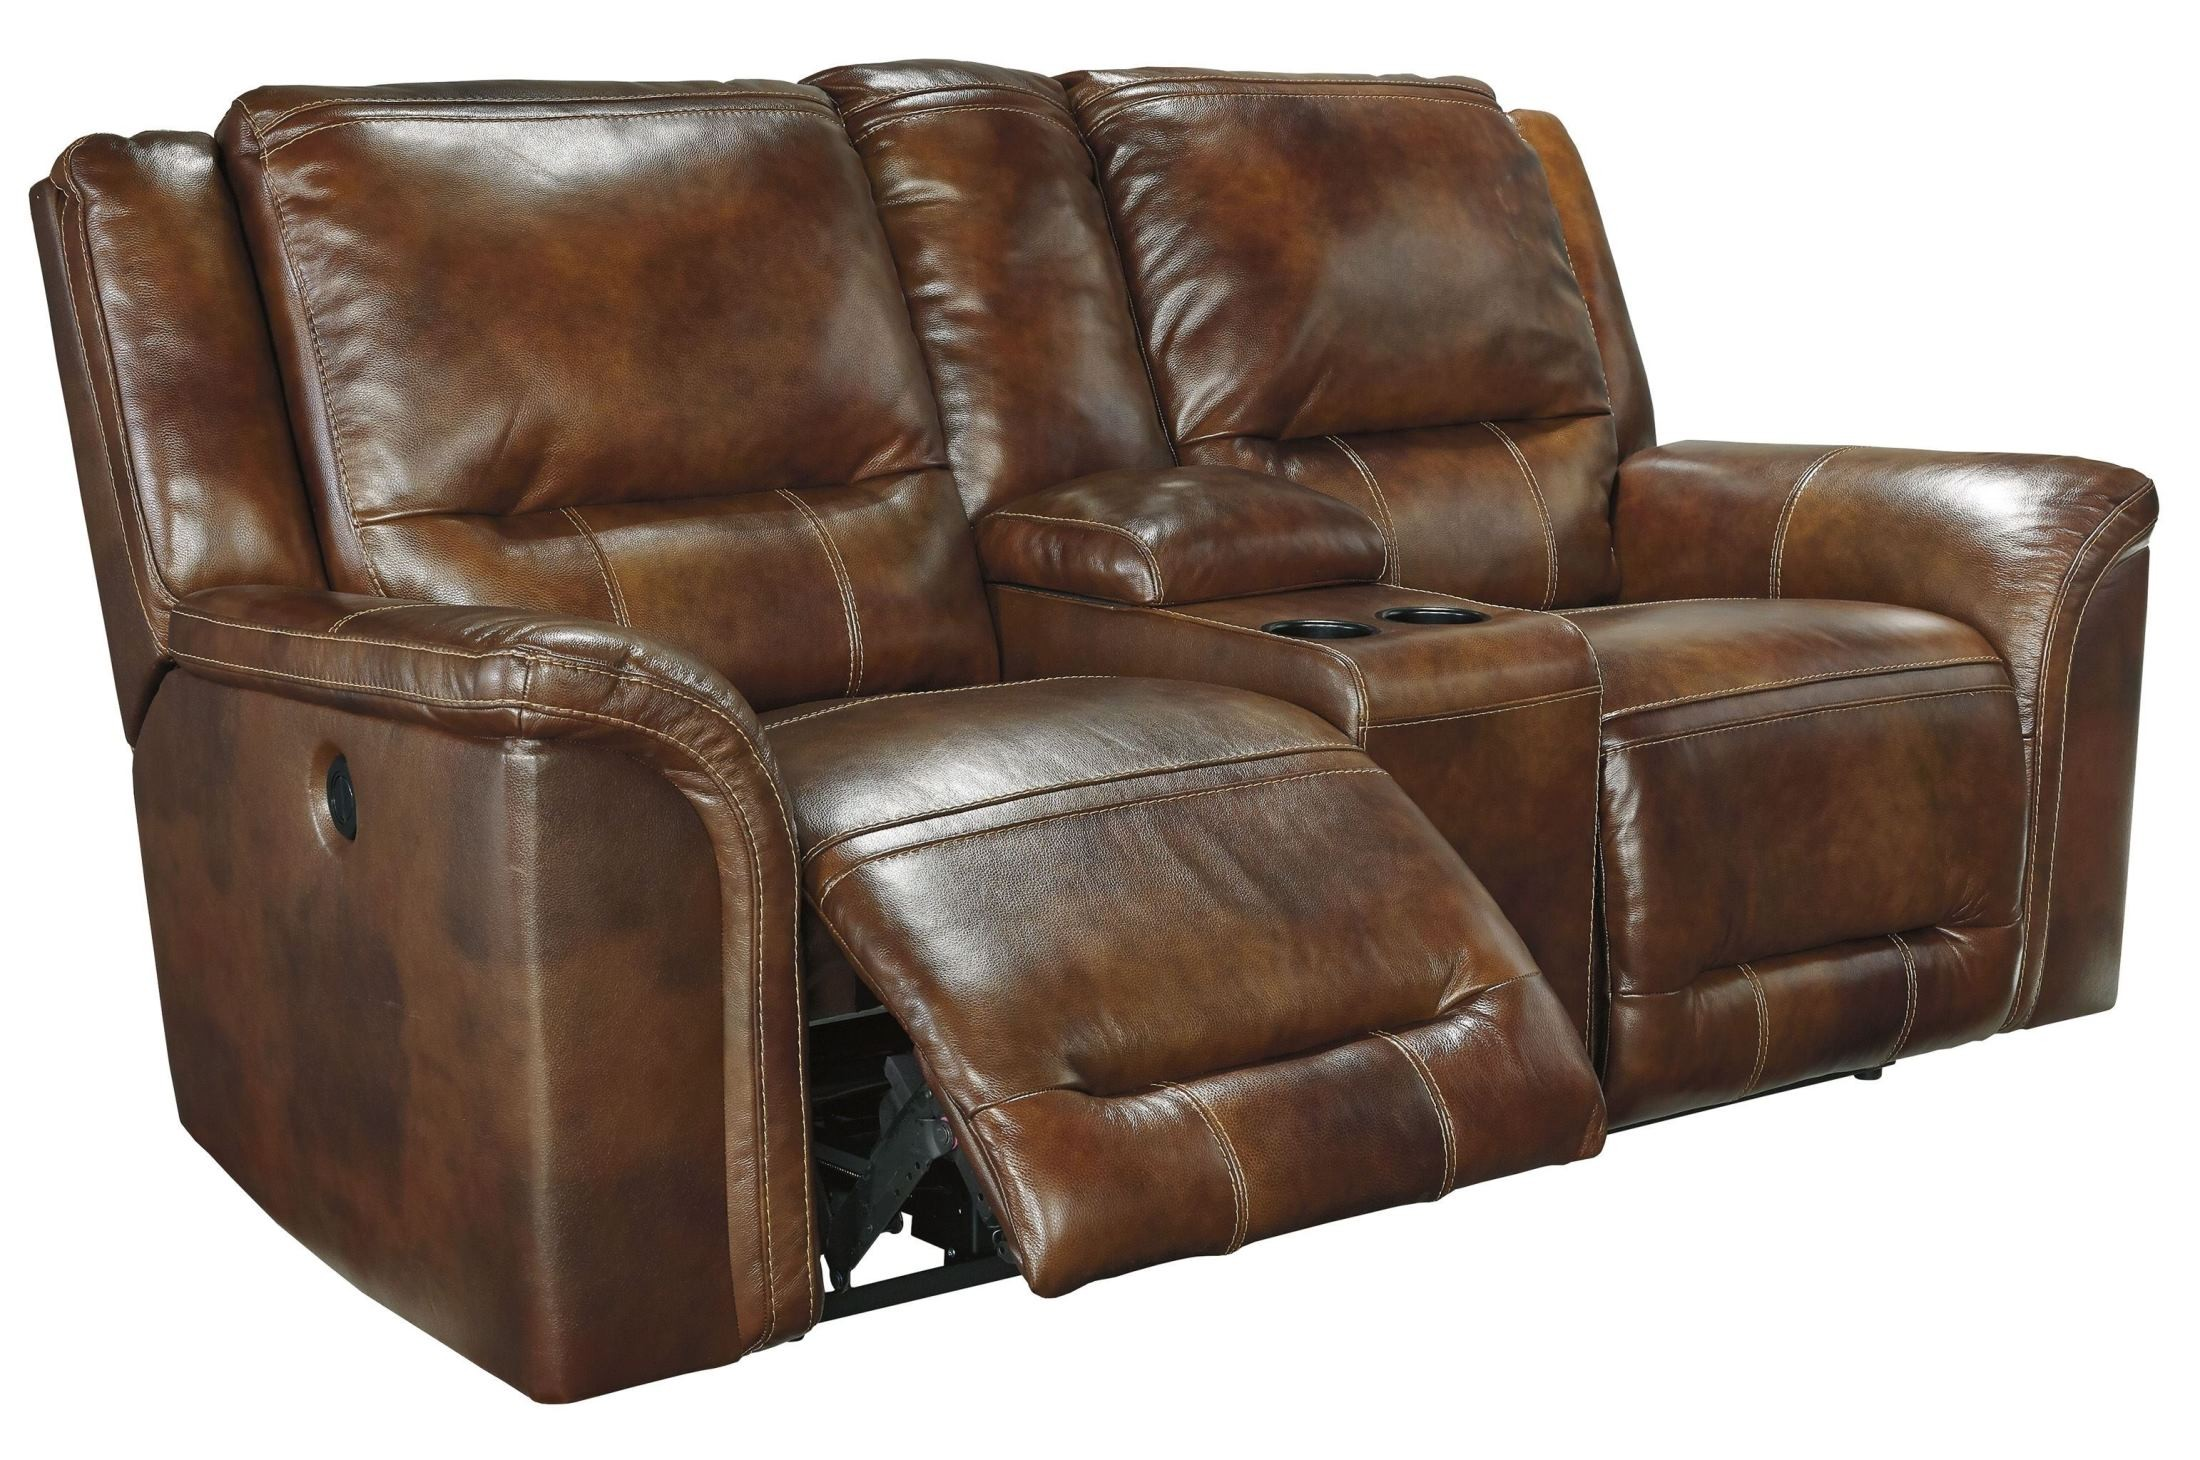 Jayron harness double reclining power loveseat with console from ashley u7660096 coleman Power loveseat recliner